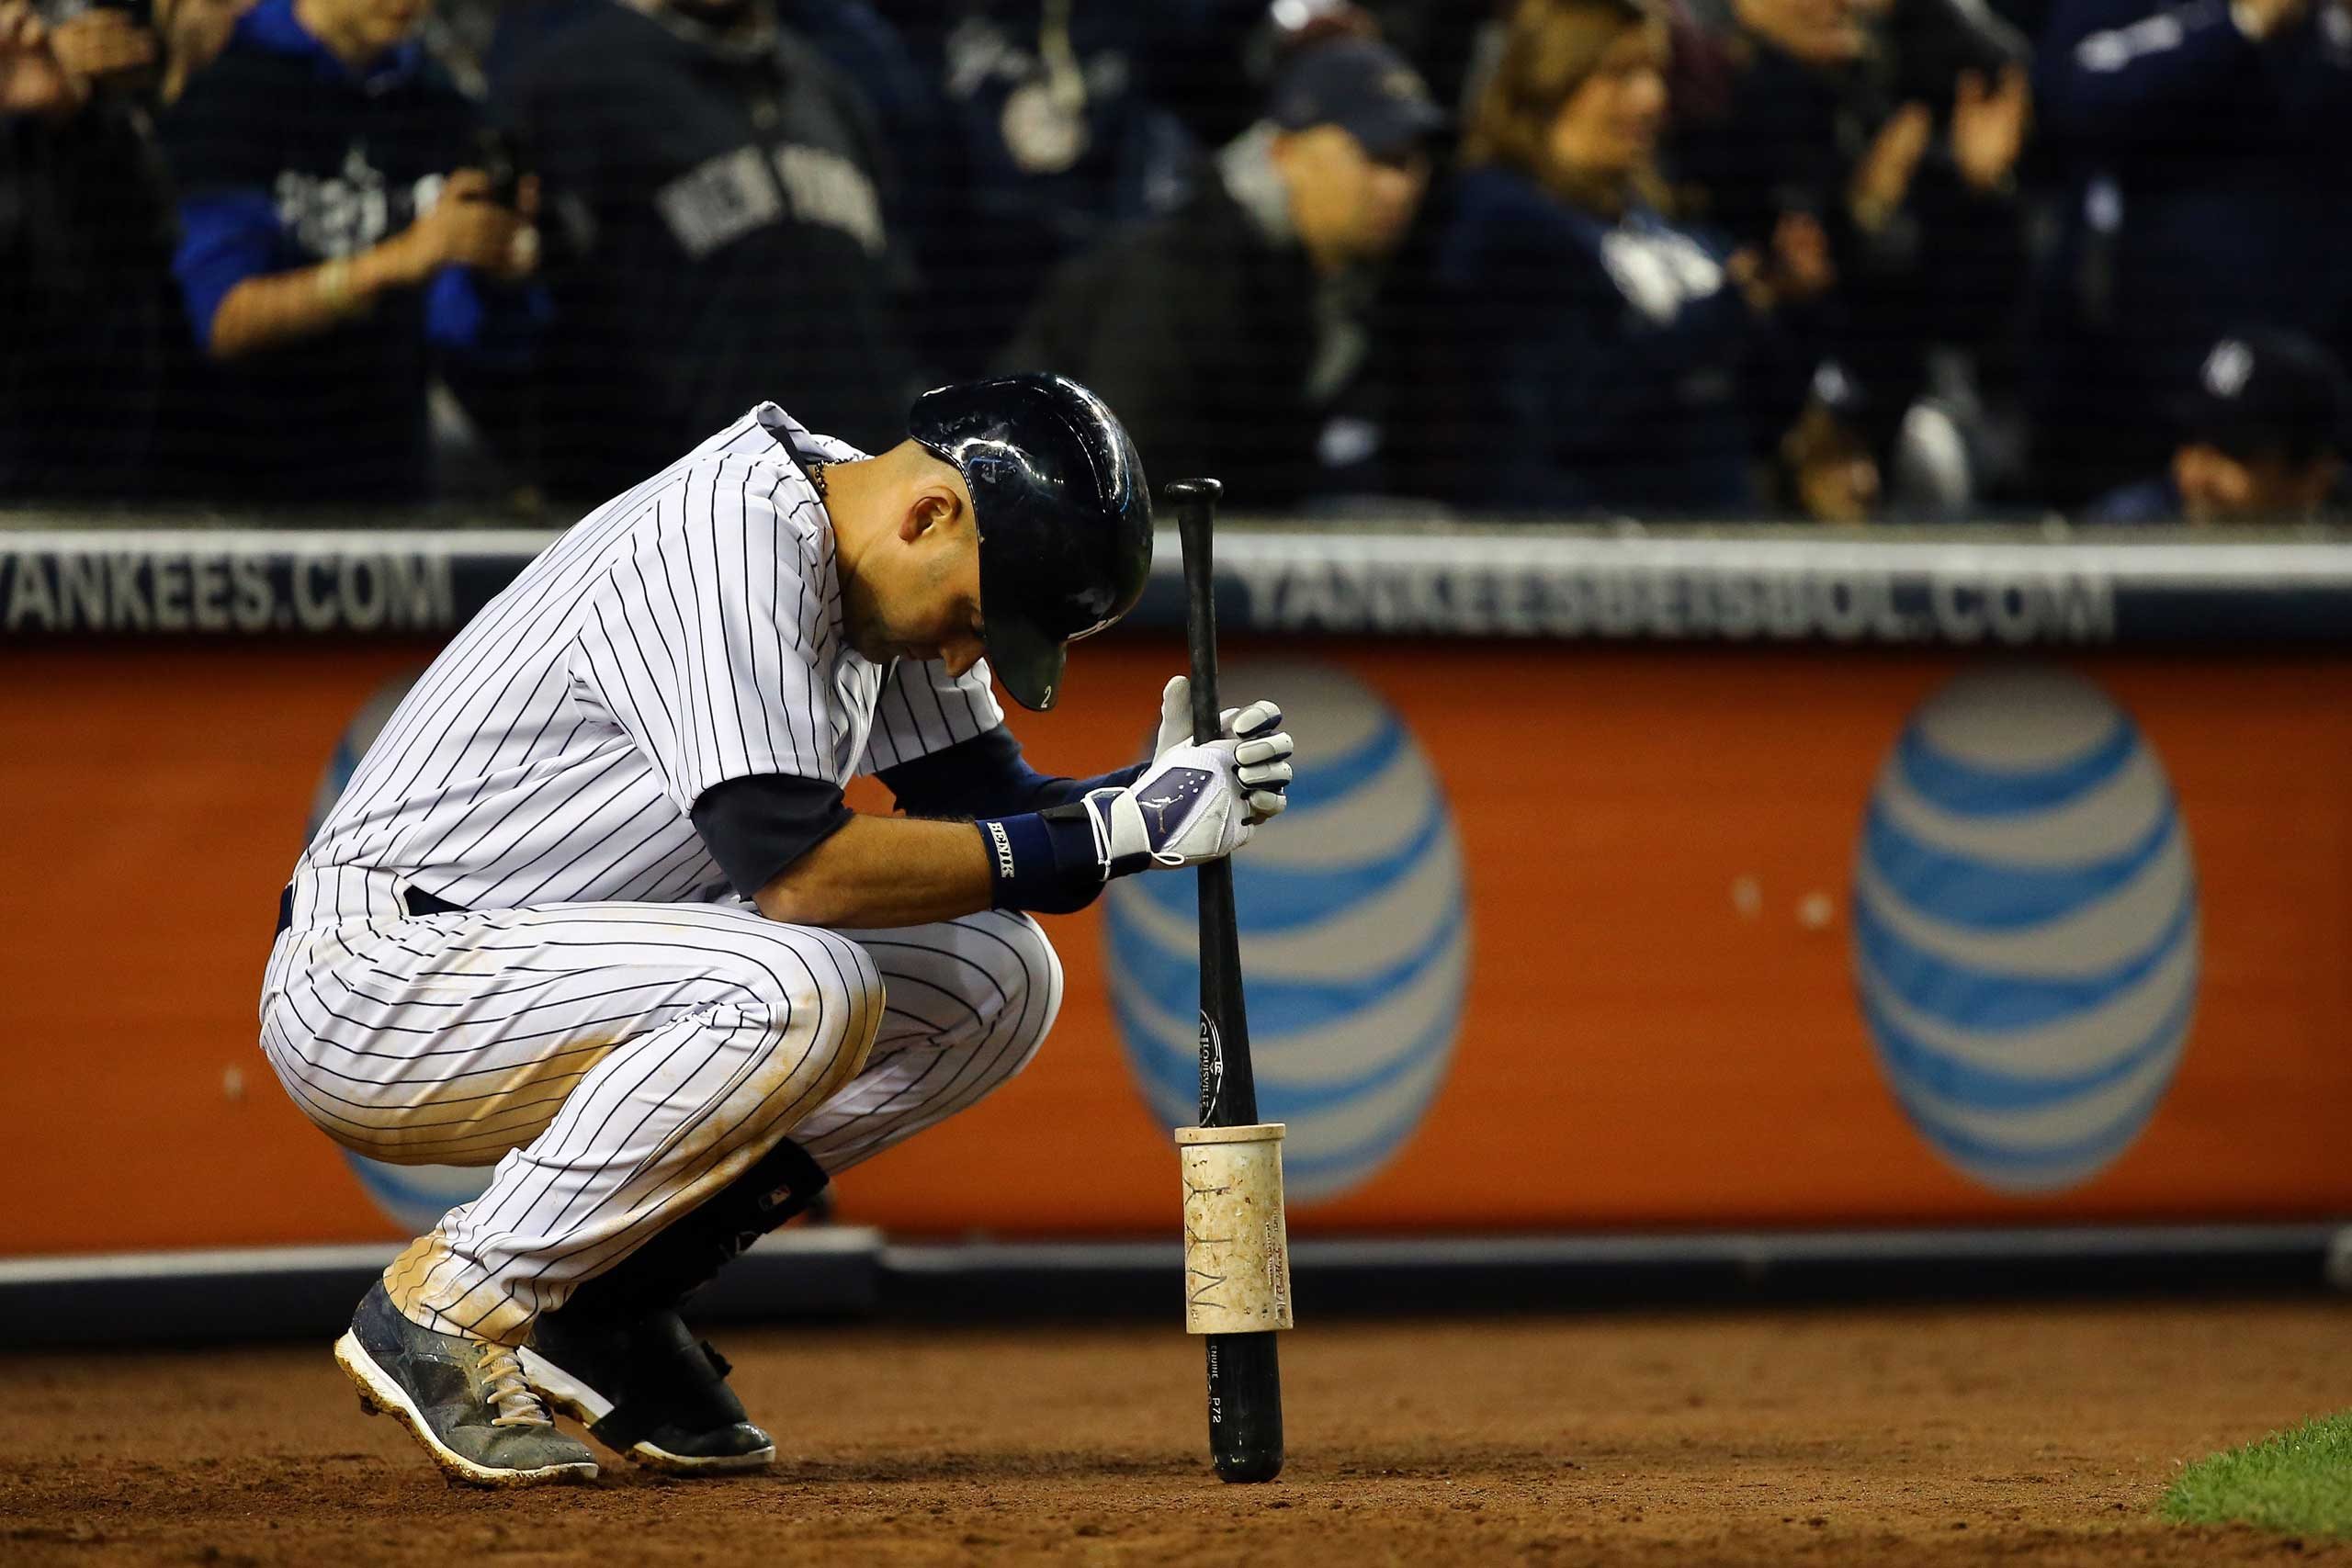 Derek Jeter looks on against the Baltimore Orioles during a game at Yankee Stadium on Sept. 25, 2014.